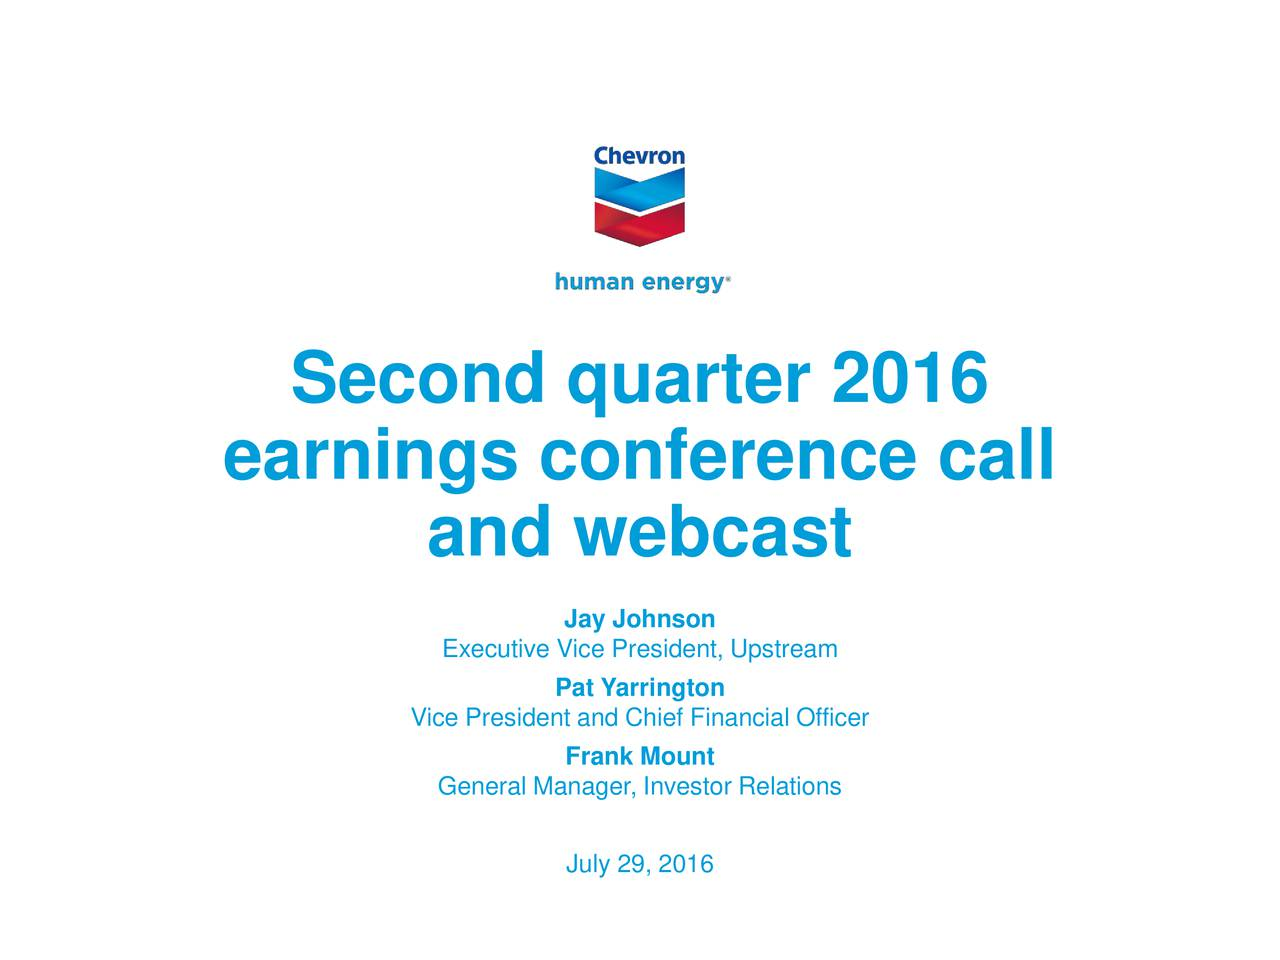 earnings conference call and webcast Jay Johnson Executive Vice President, Upstream Pat Yarrington Vice President and Chief Financial Officer Frank Mount General Manager, Investor Relations July 29, 2016 2016 Chevron Corporation